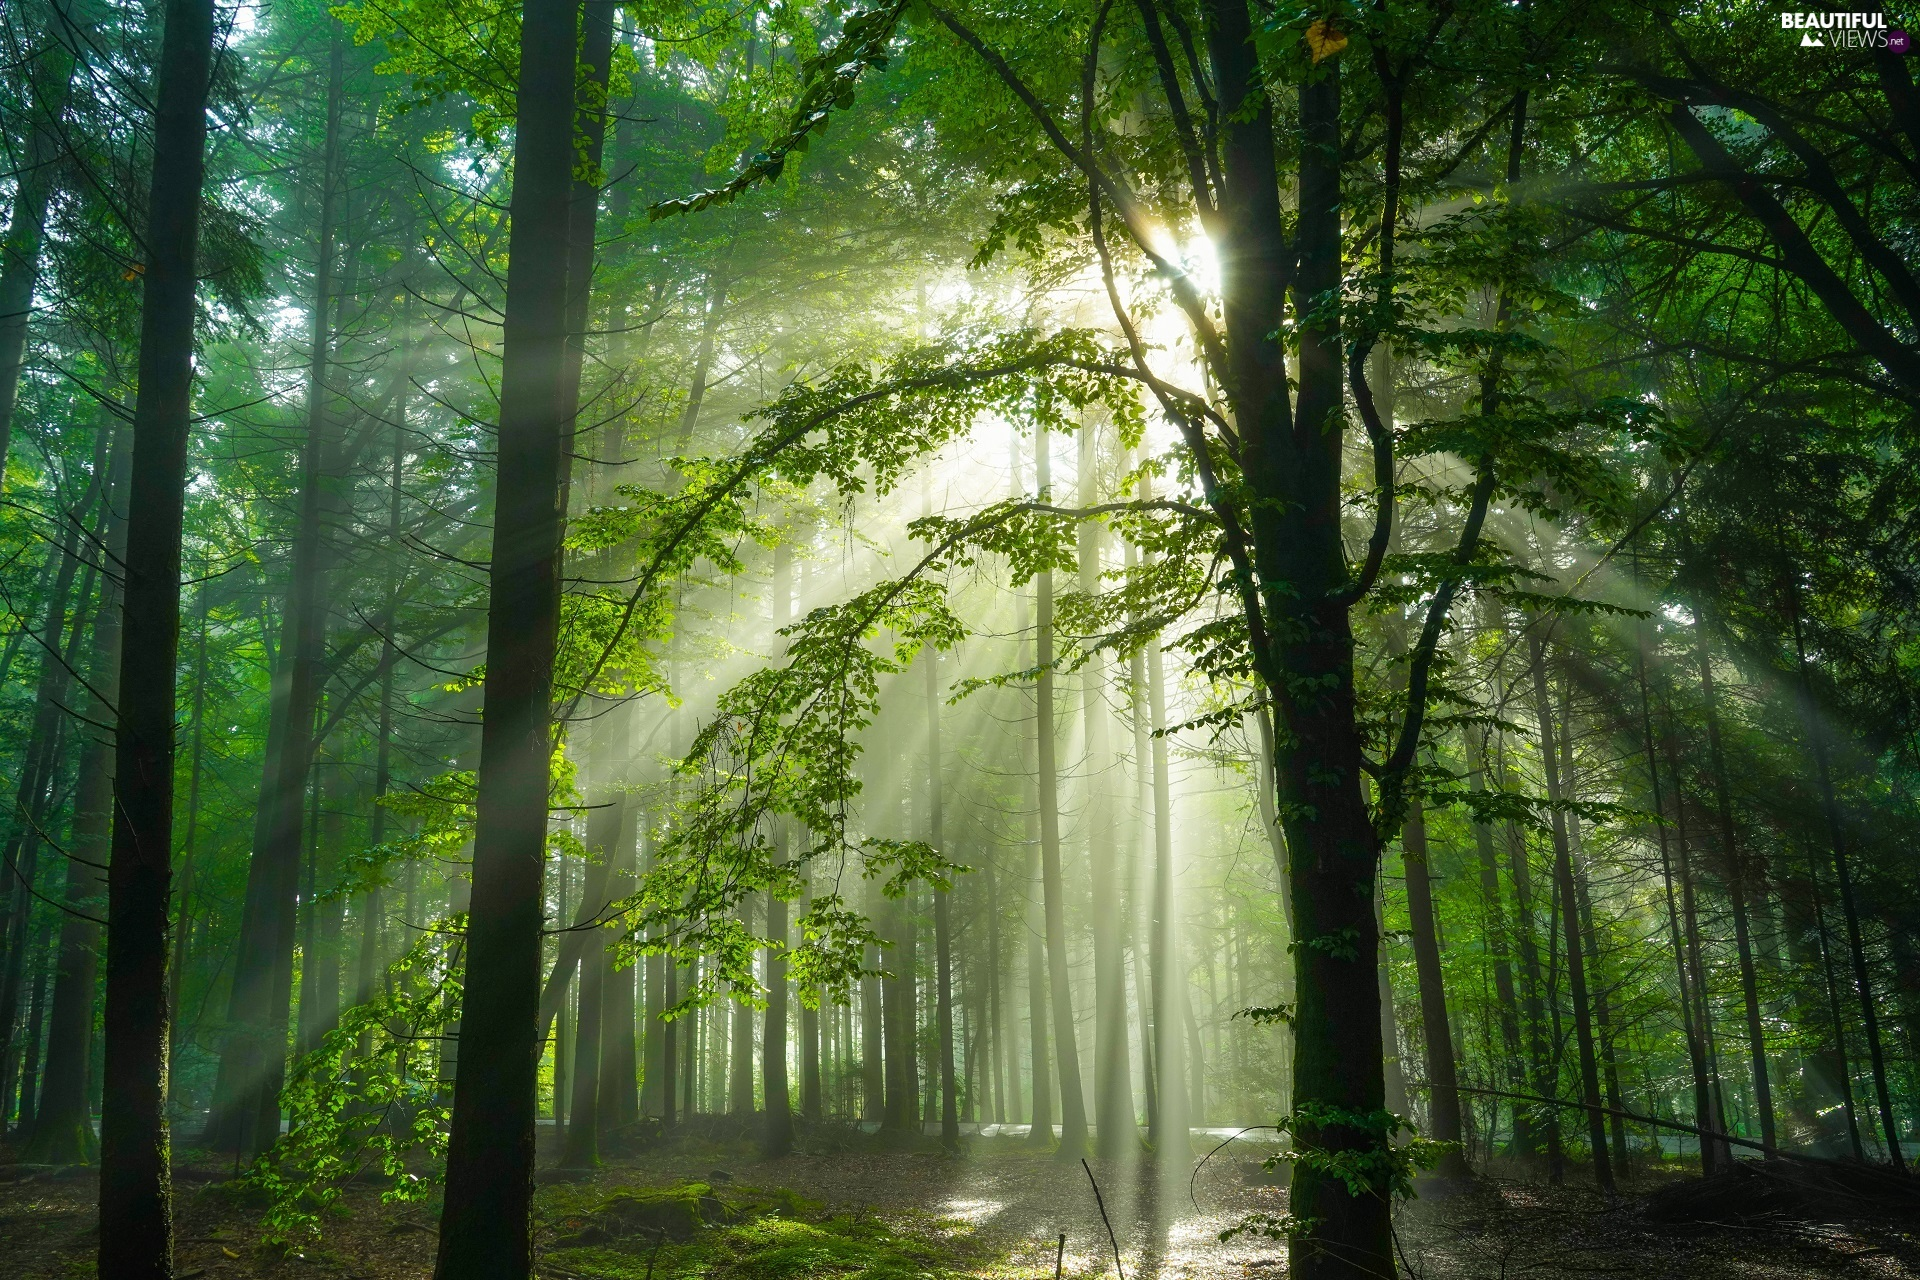 viewes, light breaking through sky, forest, trees, illuminated